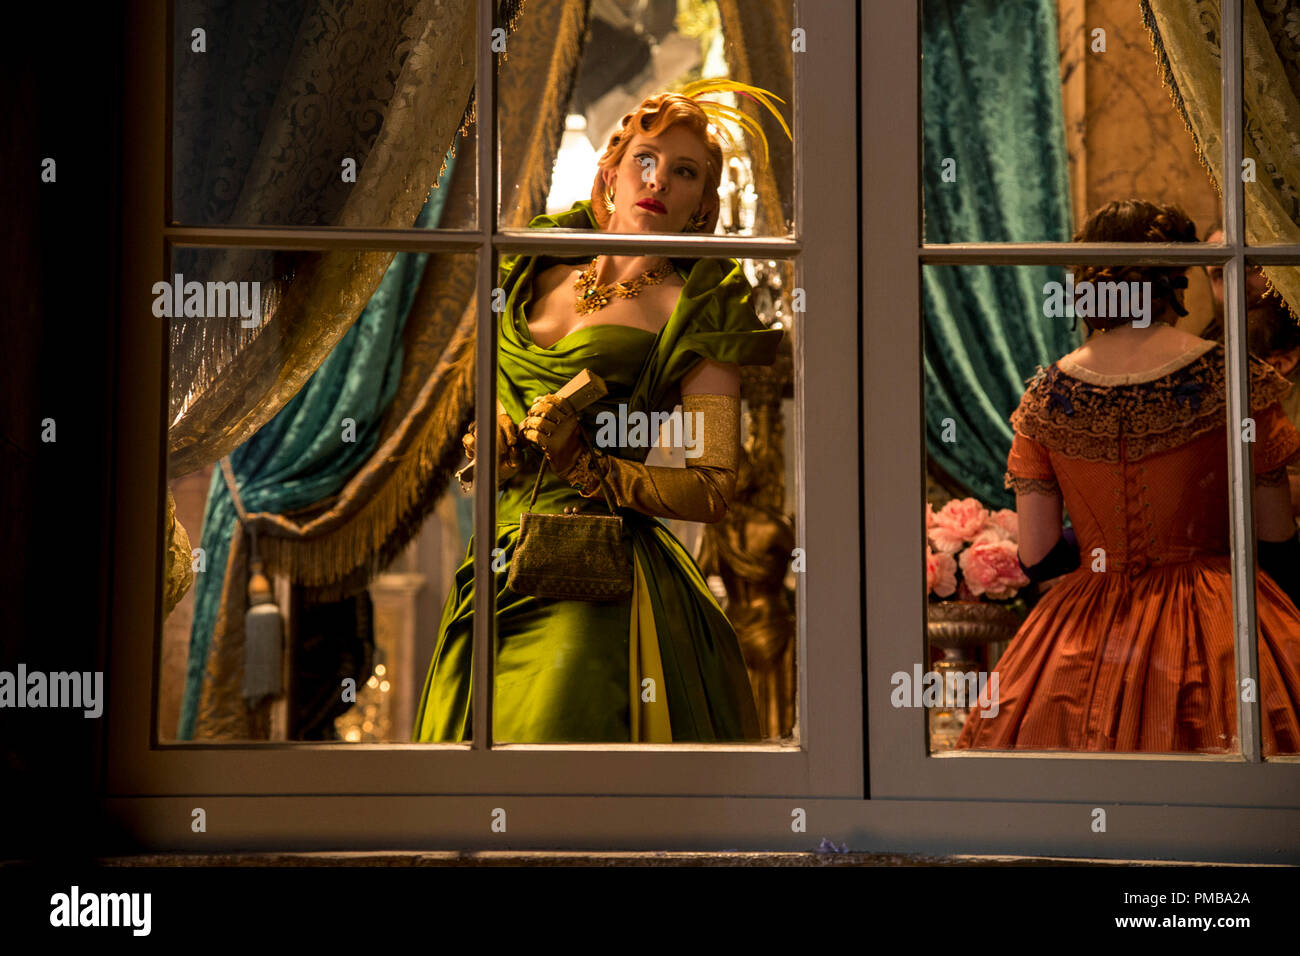 Cate Blanchett is the Stepmother in Disney's live-action feature CINDERELLA which brings to life the timeless images from Disney's 1950 animated masterpiece as fully-realized characters in a visually dazzling spectacle for a whole new generation. - Stock Image